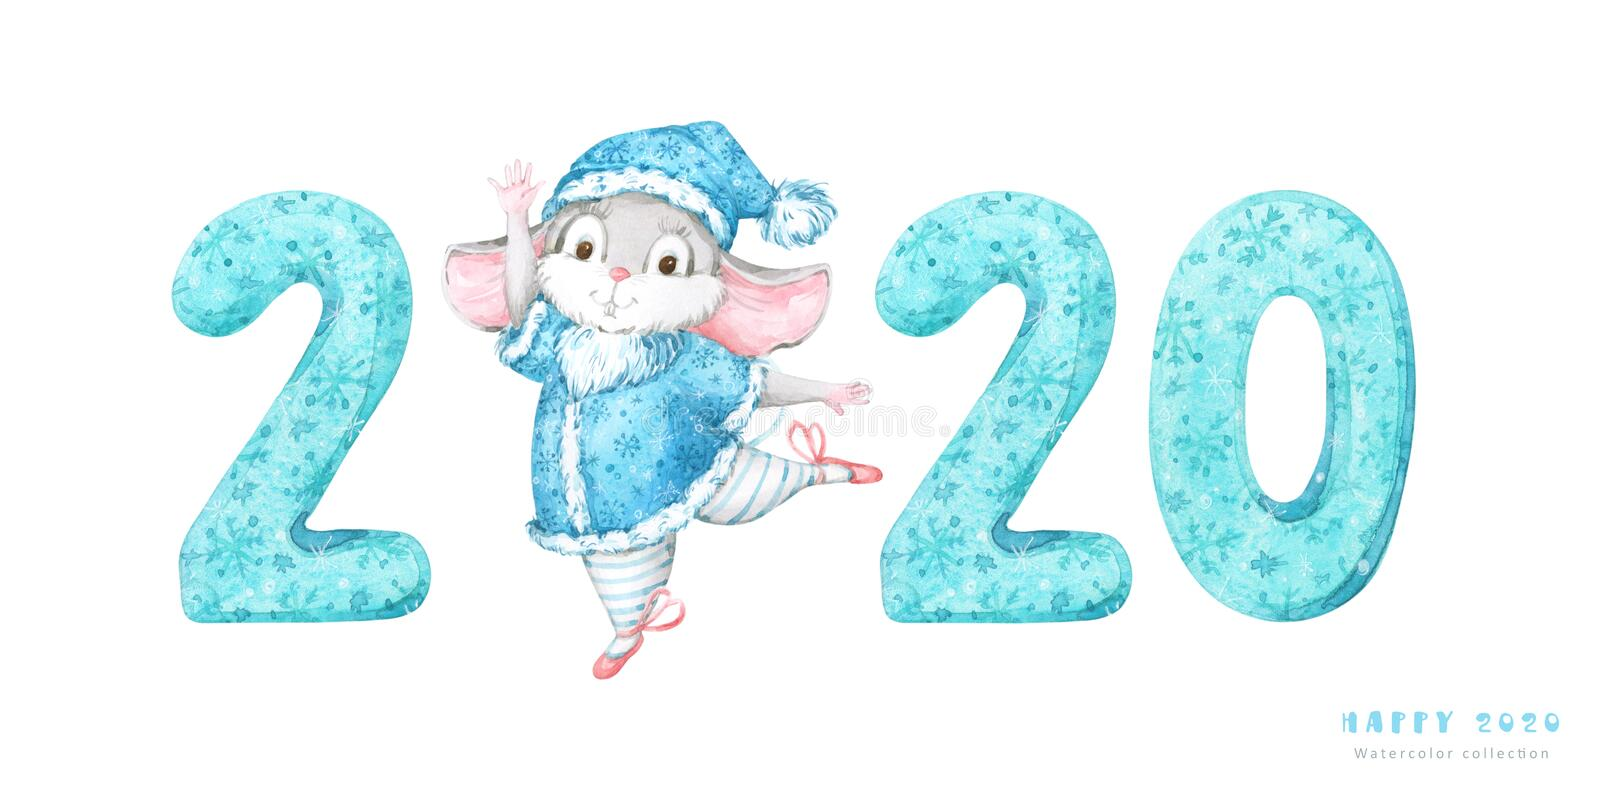 2020 Happy New Year banner with hand painted turquoise patterned numbers and cute dancing mouse, rat illustration on white backgro. 2020 Christmas and New Year vector illustration